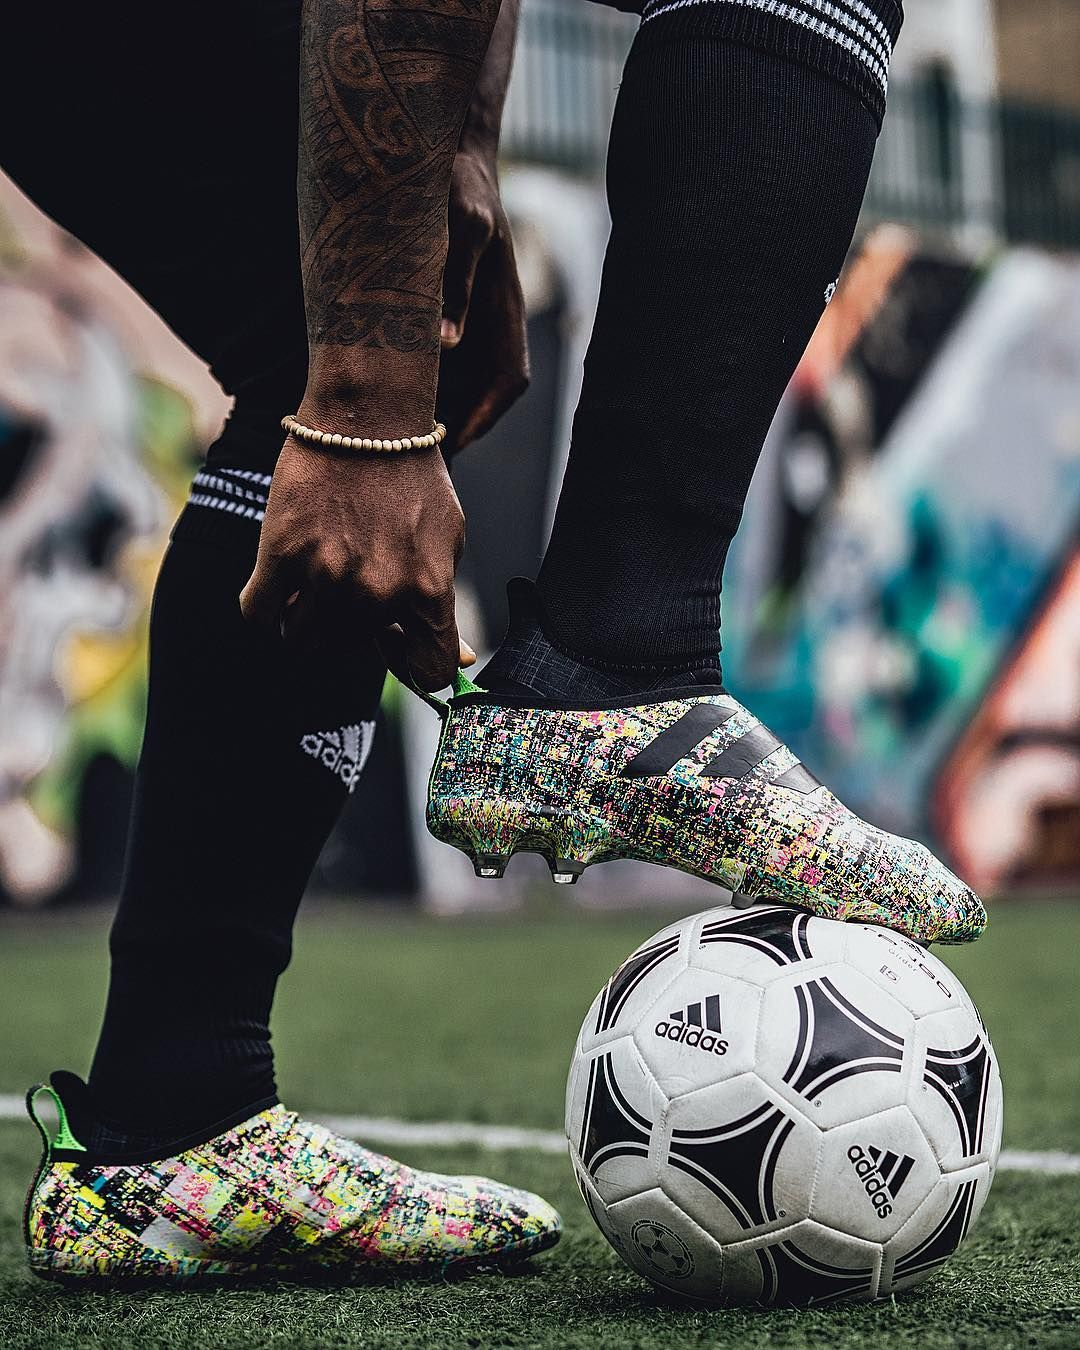 Pin by CJ Wesely on Footy Style | Adidas football, Soccer